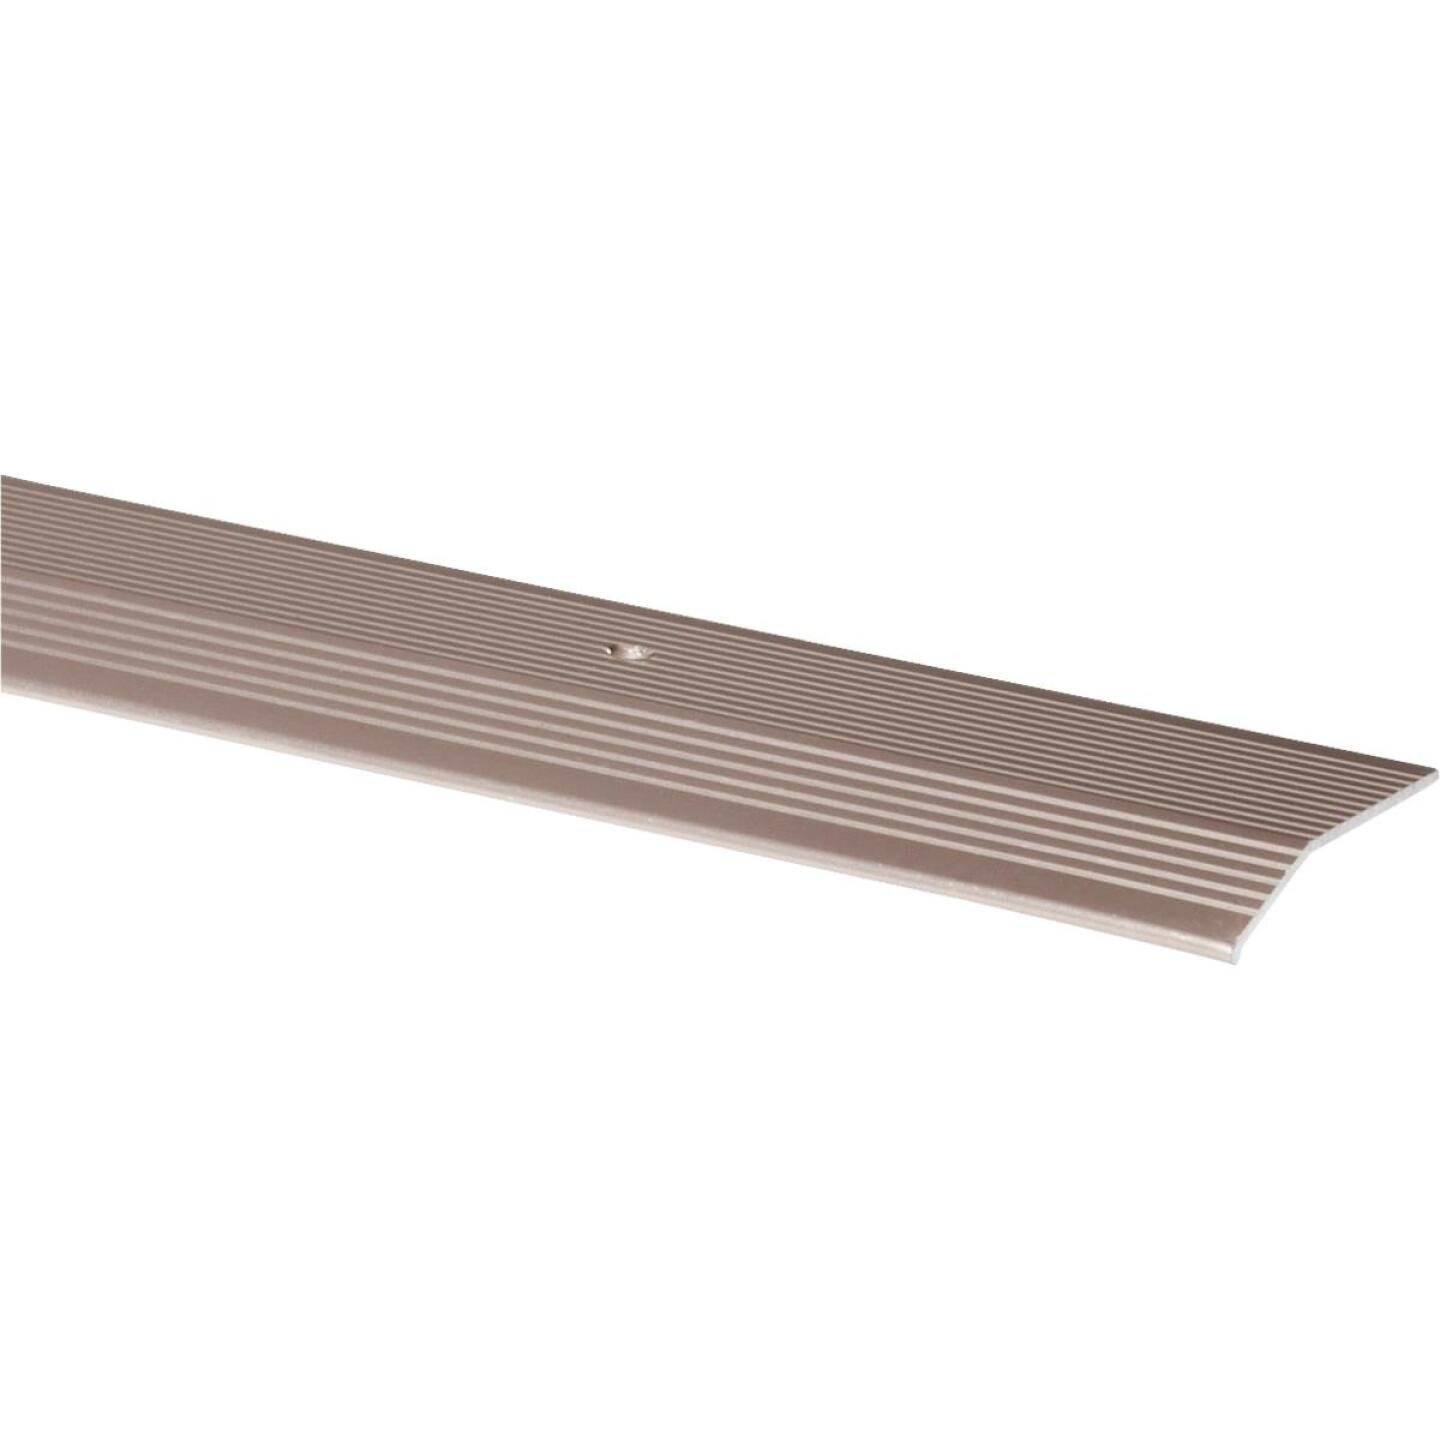 M-D Pewter Fluted 2 In. x 3 Ft. Aluminum Carpet Trim Bar, Extra Wide Image 1